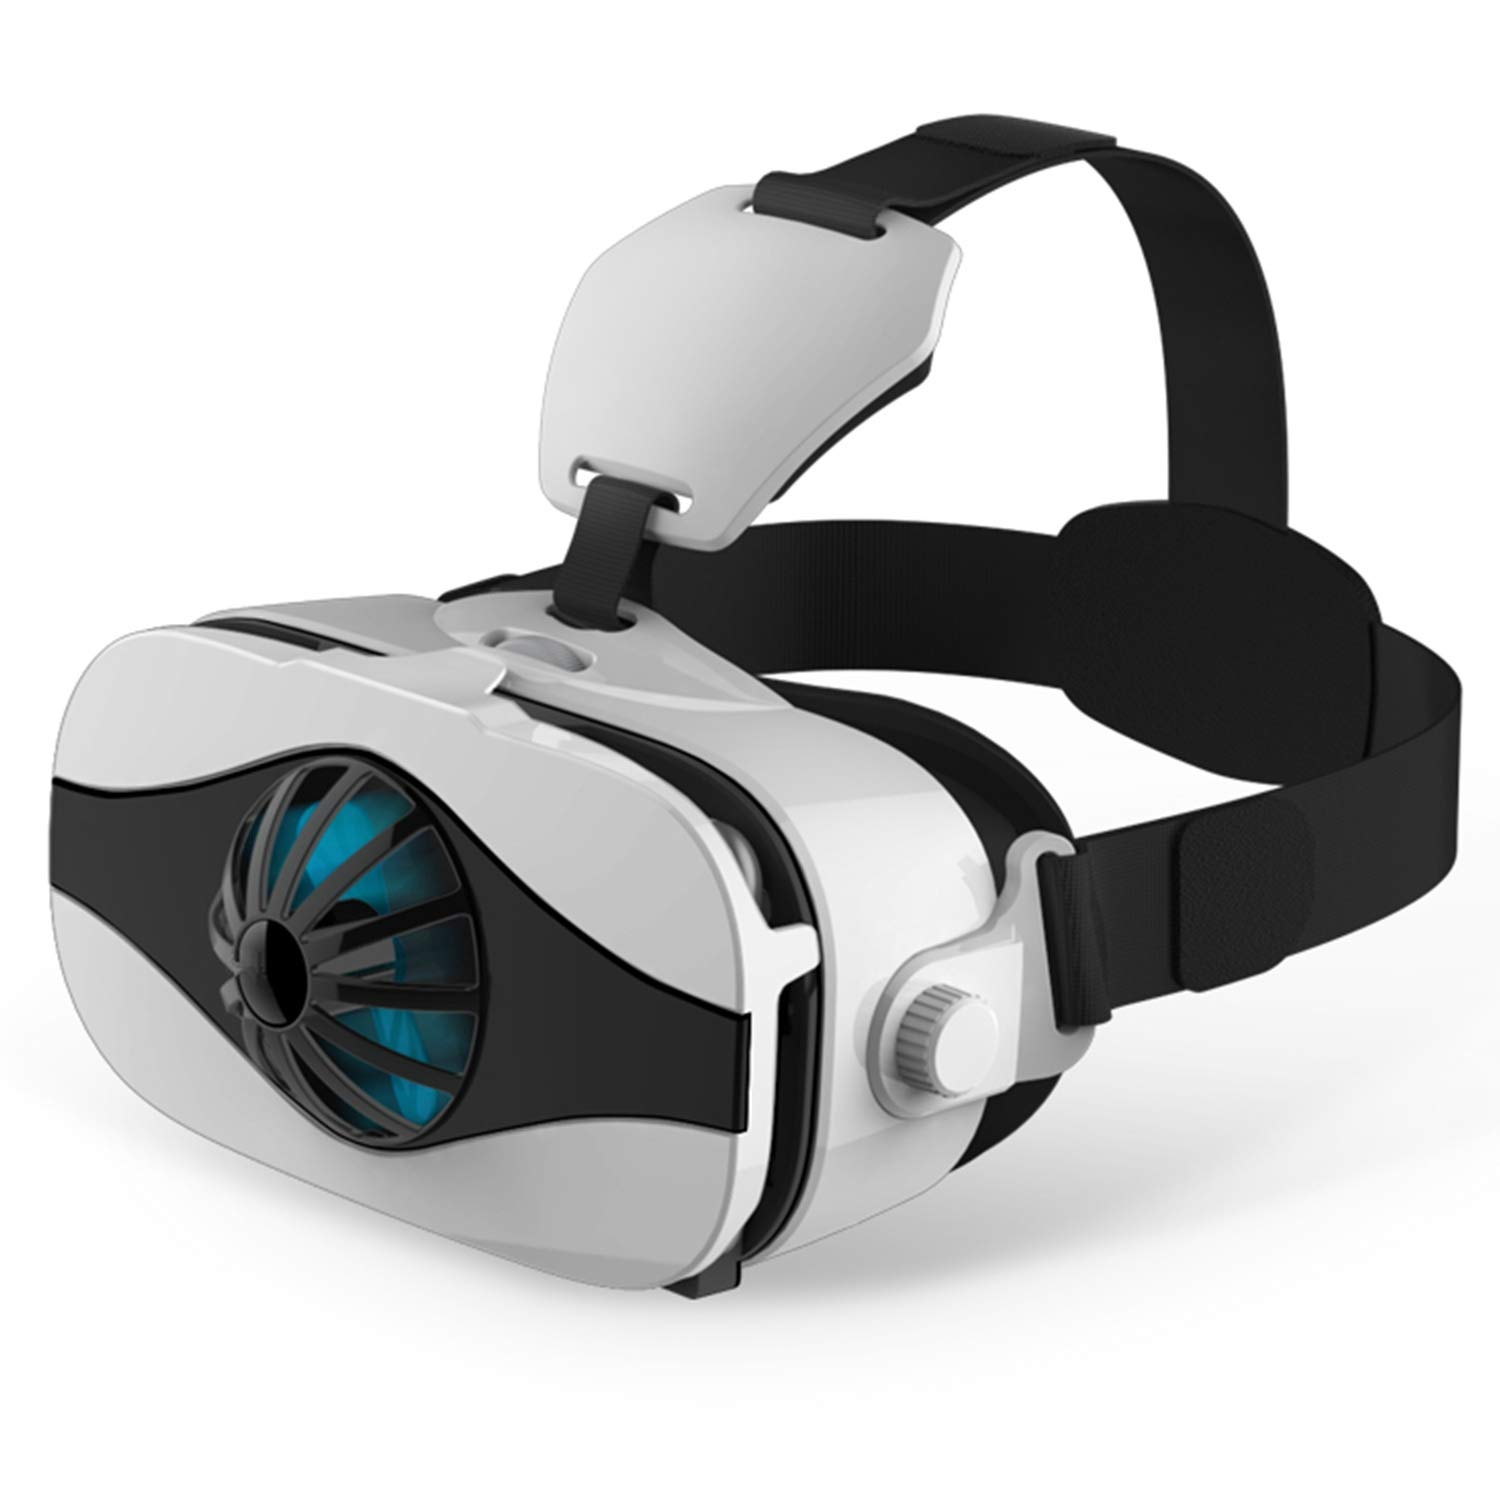 """3D VR Headset/Glasses, Tsanglight VR Virtual Reality Goggles w/Fans for 3D IMAX Movie/Game for Samsung Galaxy Note 8 S9 S8 S7 S6 Edge, iPhone 9 X 8 7 6S 6 Plus New Phone & Other 4.0-6.33"""" Cellphone"""